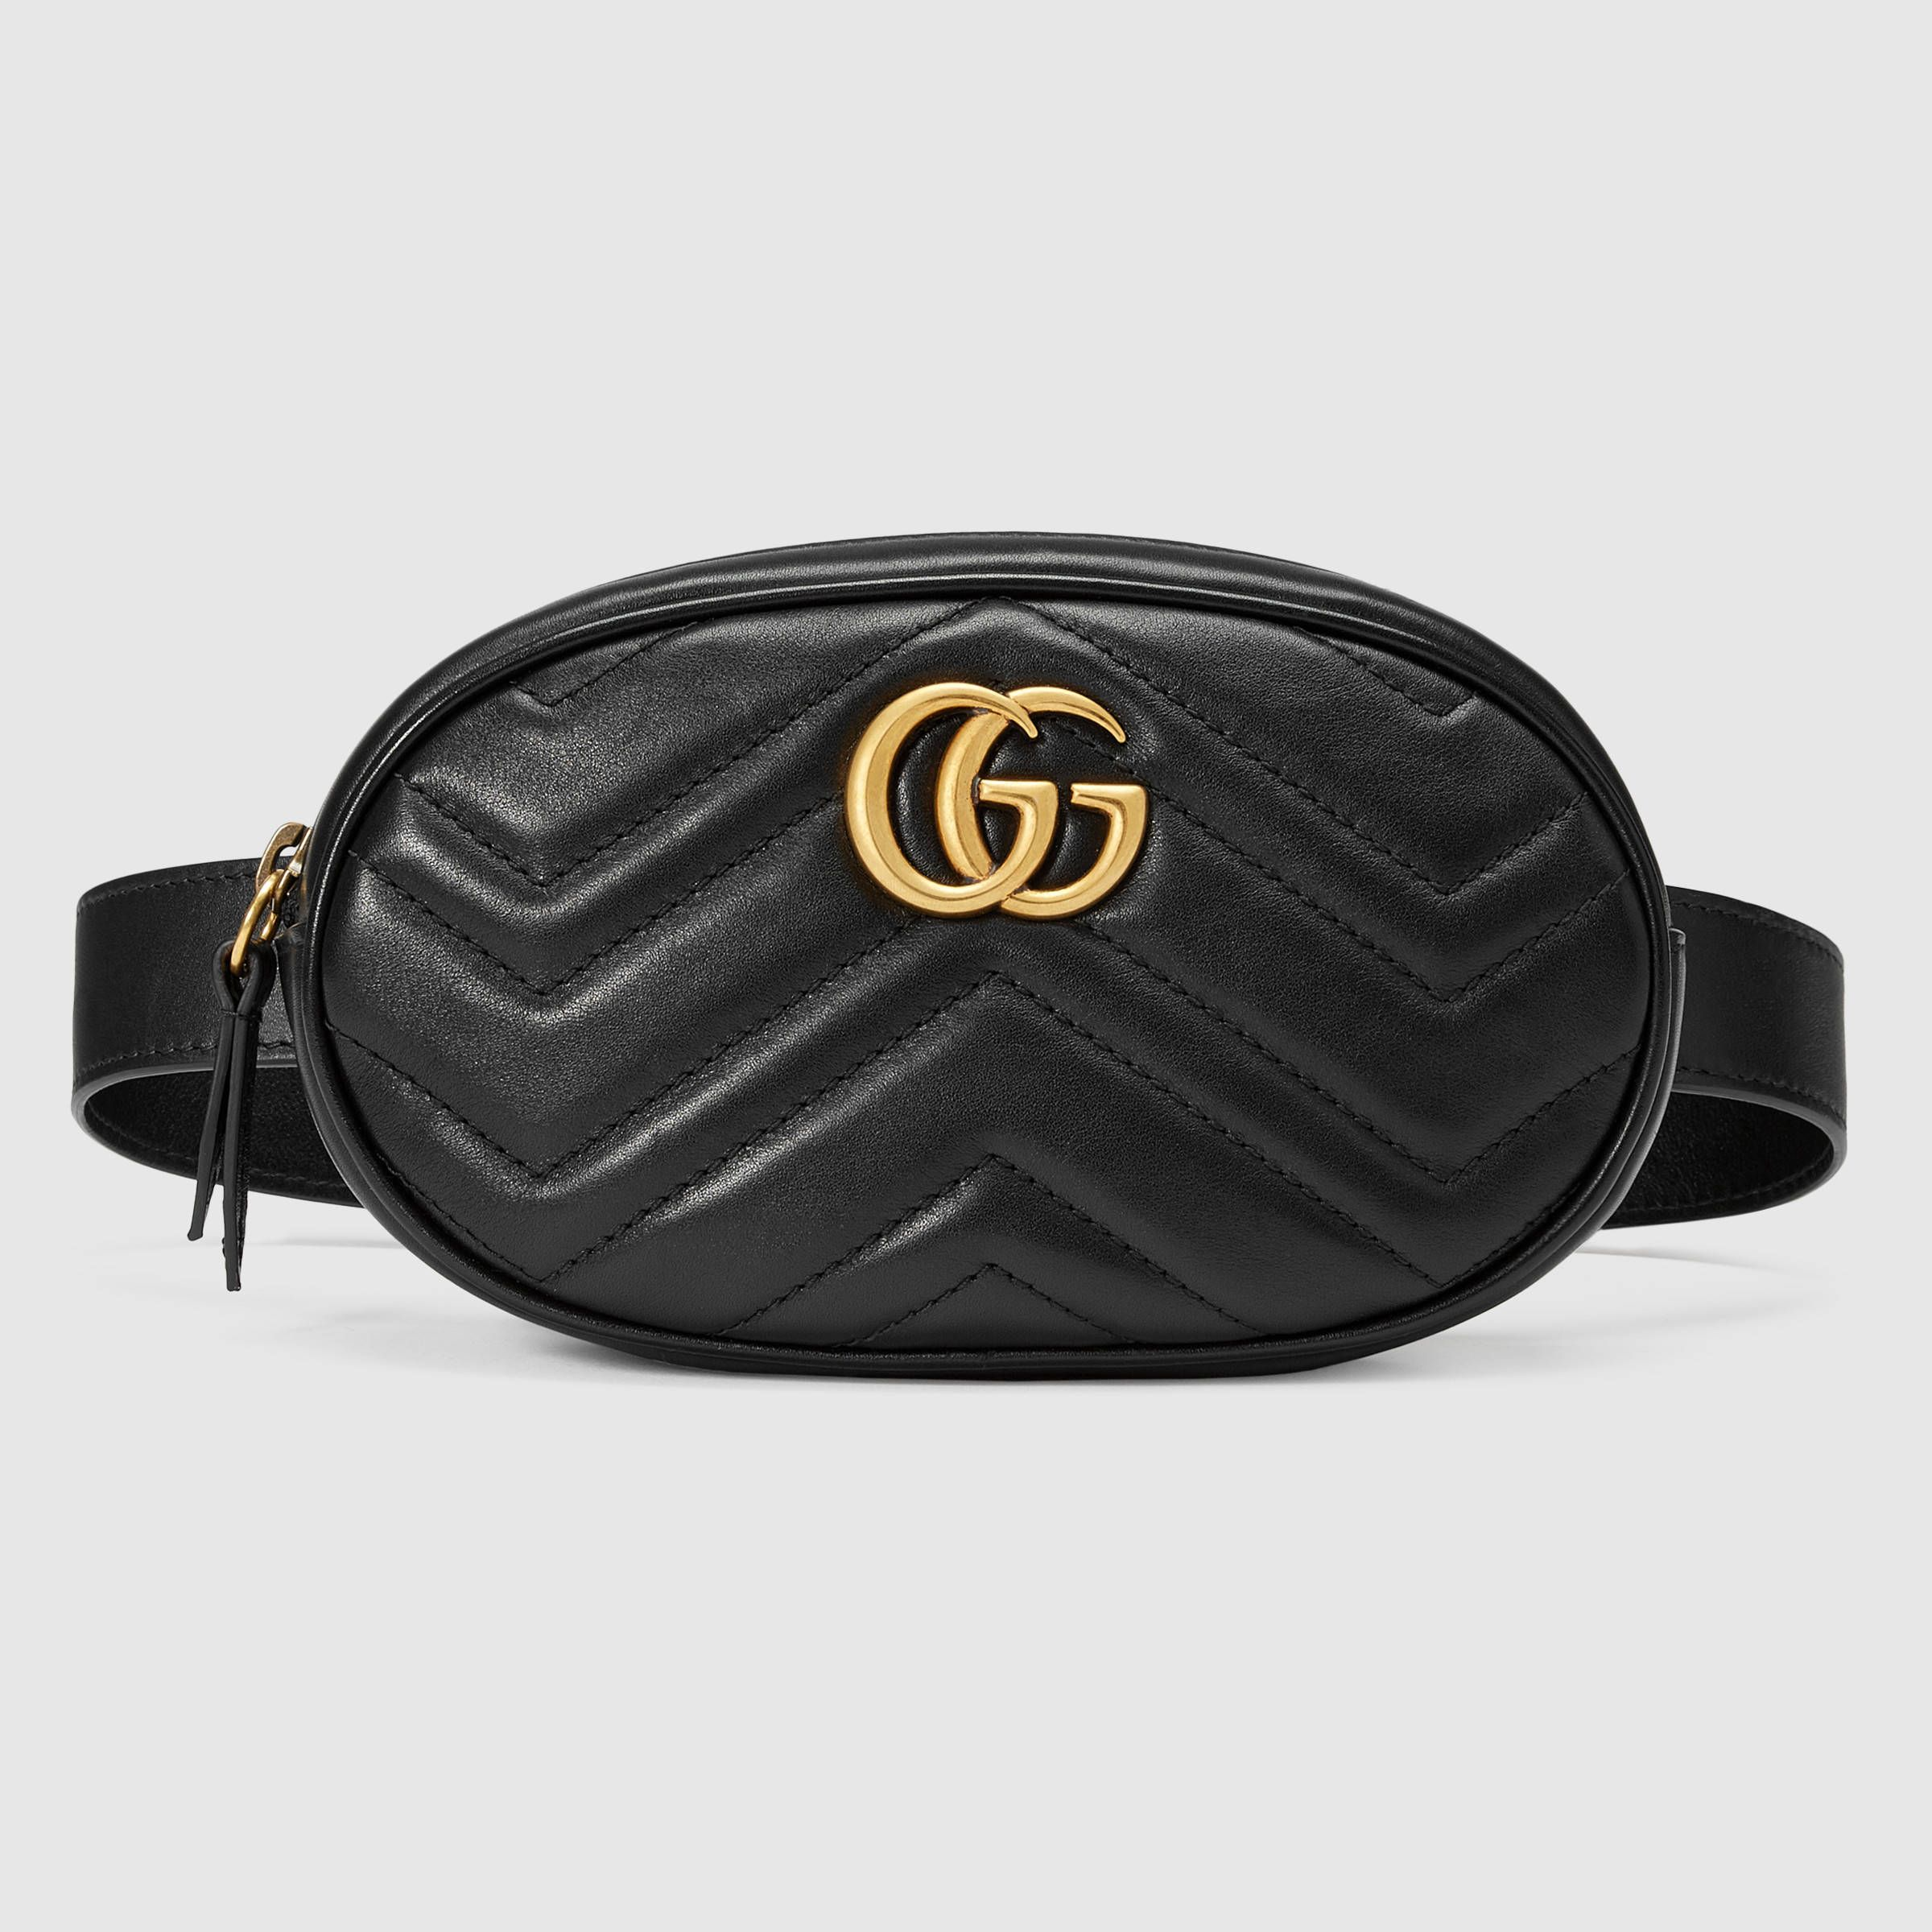 GG Marmont matelassé leather belt bag  4b8dba466f6